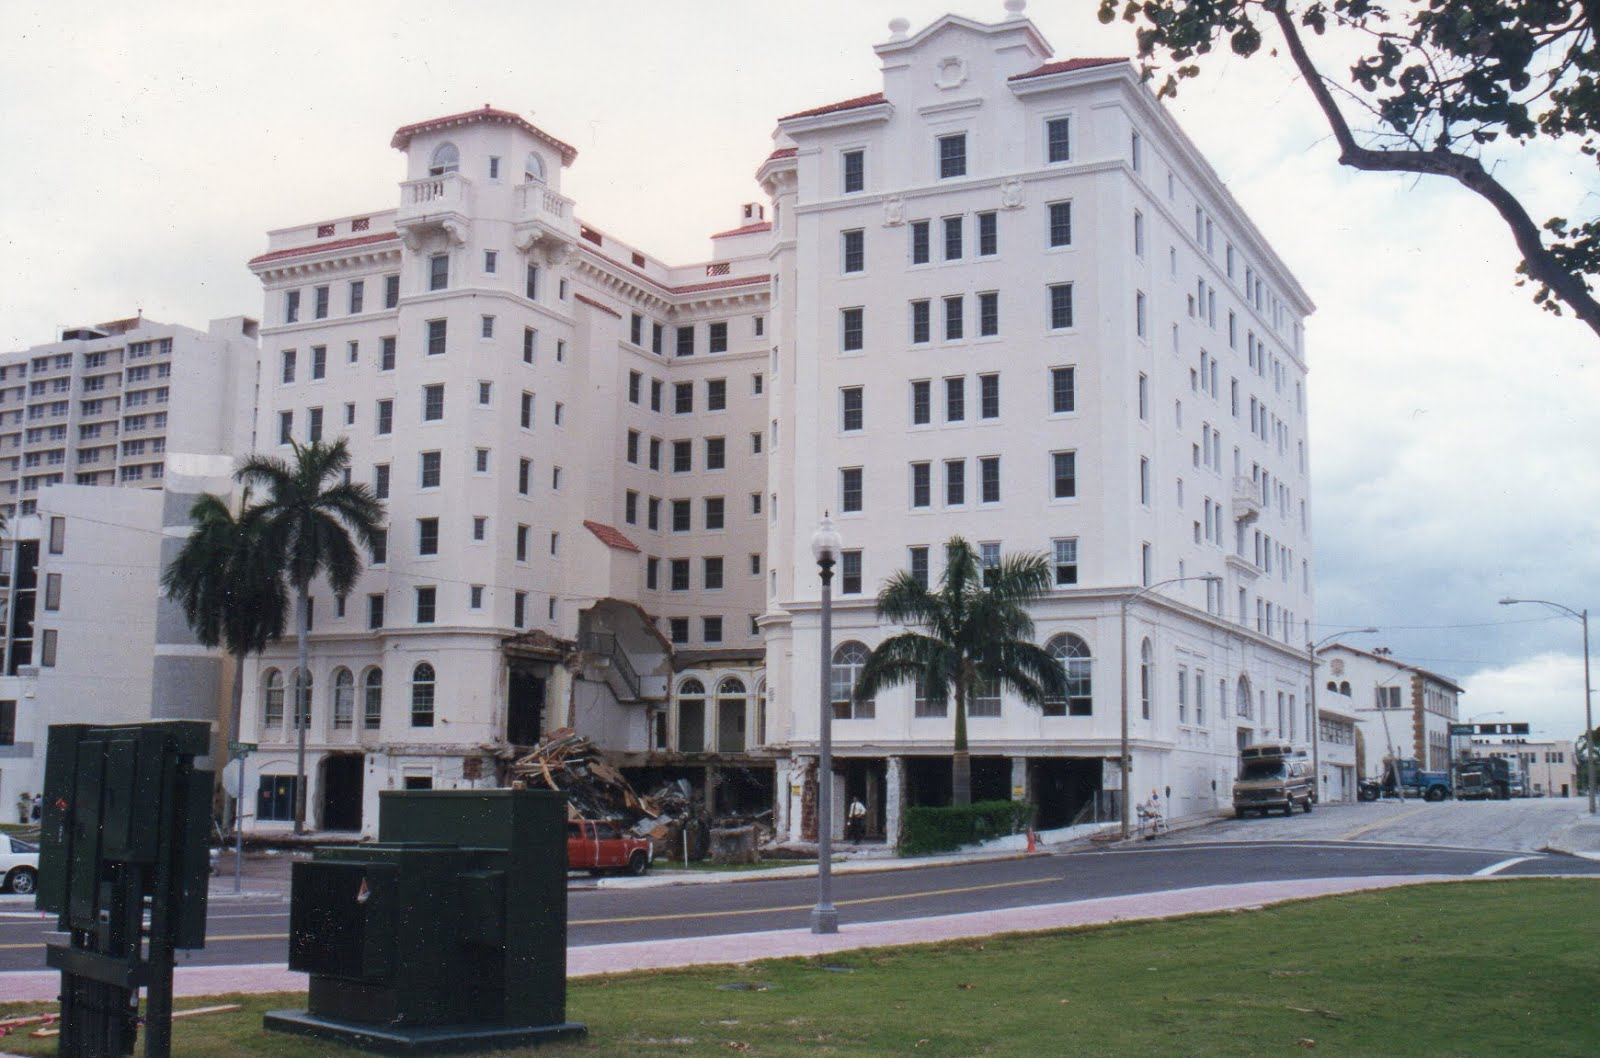 """Pennsylvania Hotel"". West Palm Beach. De- molished. Gone forever."